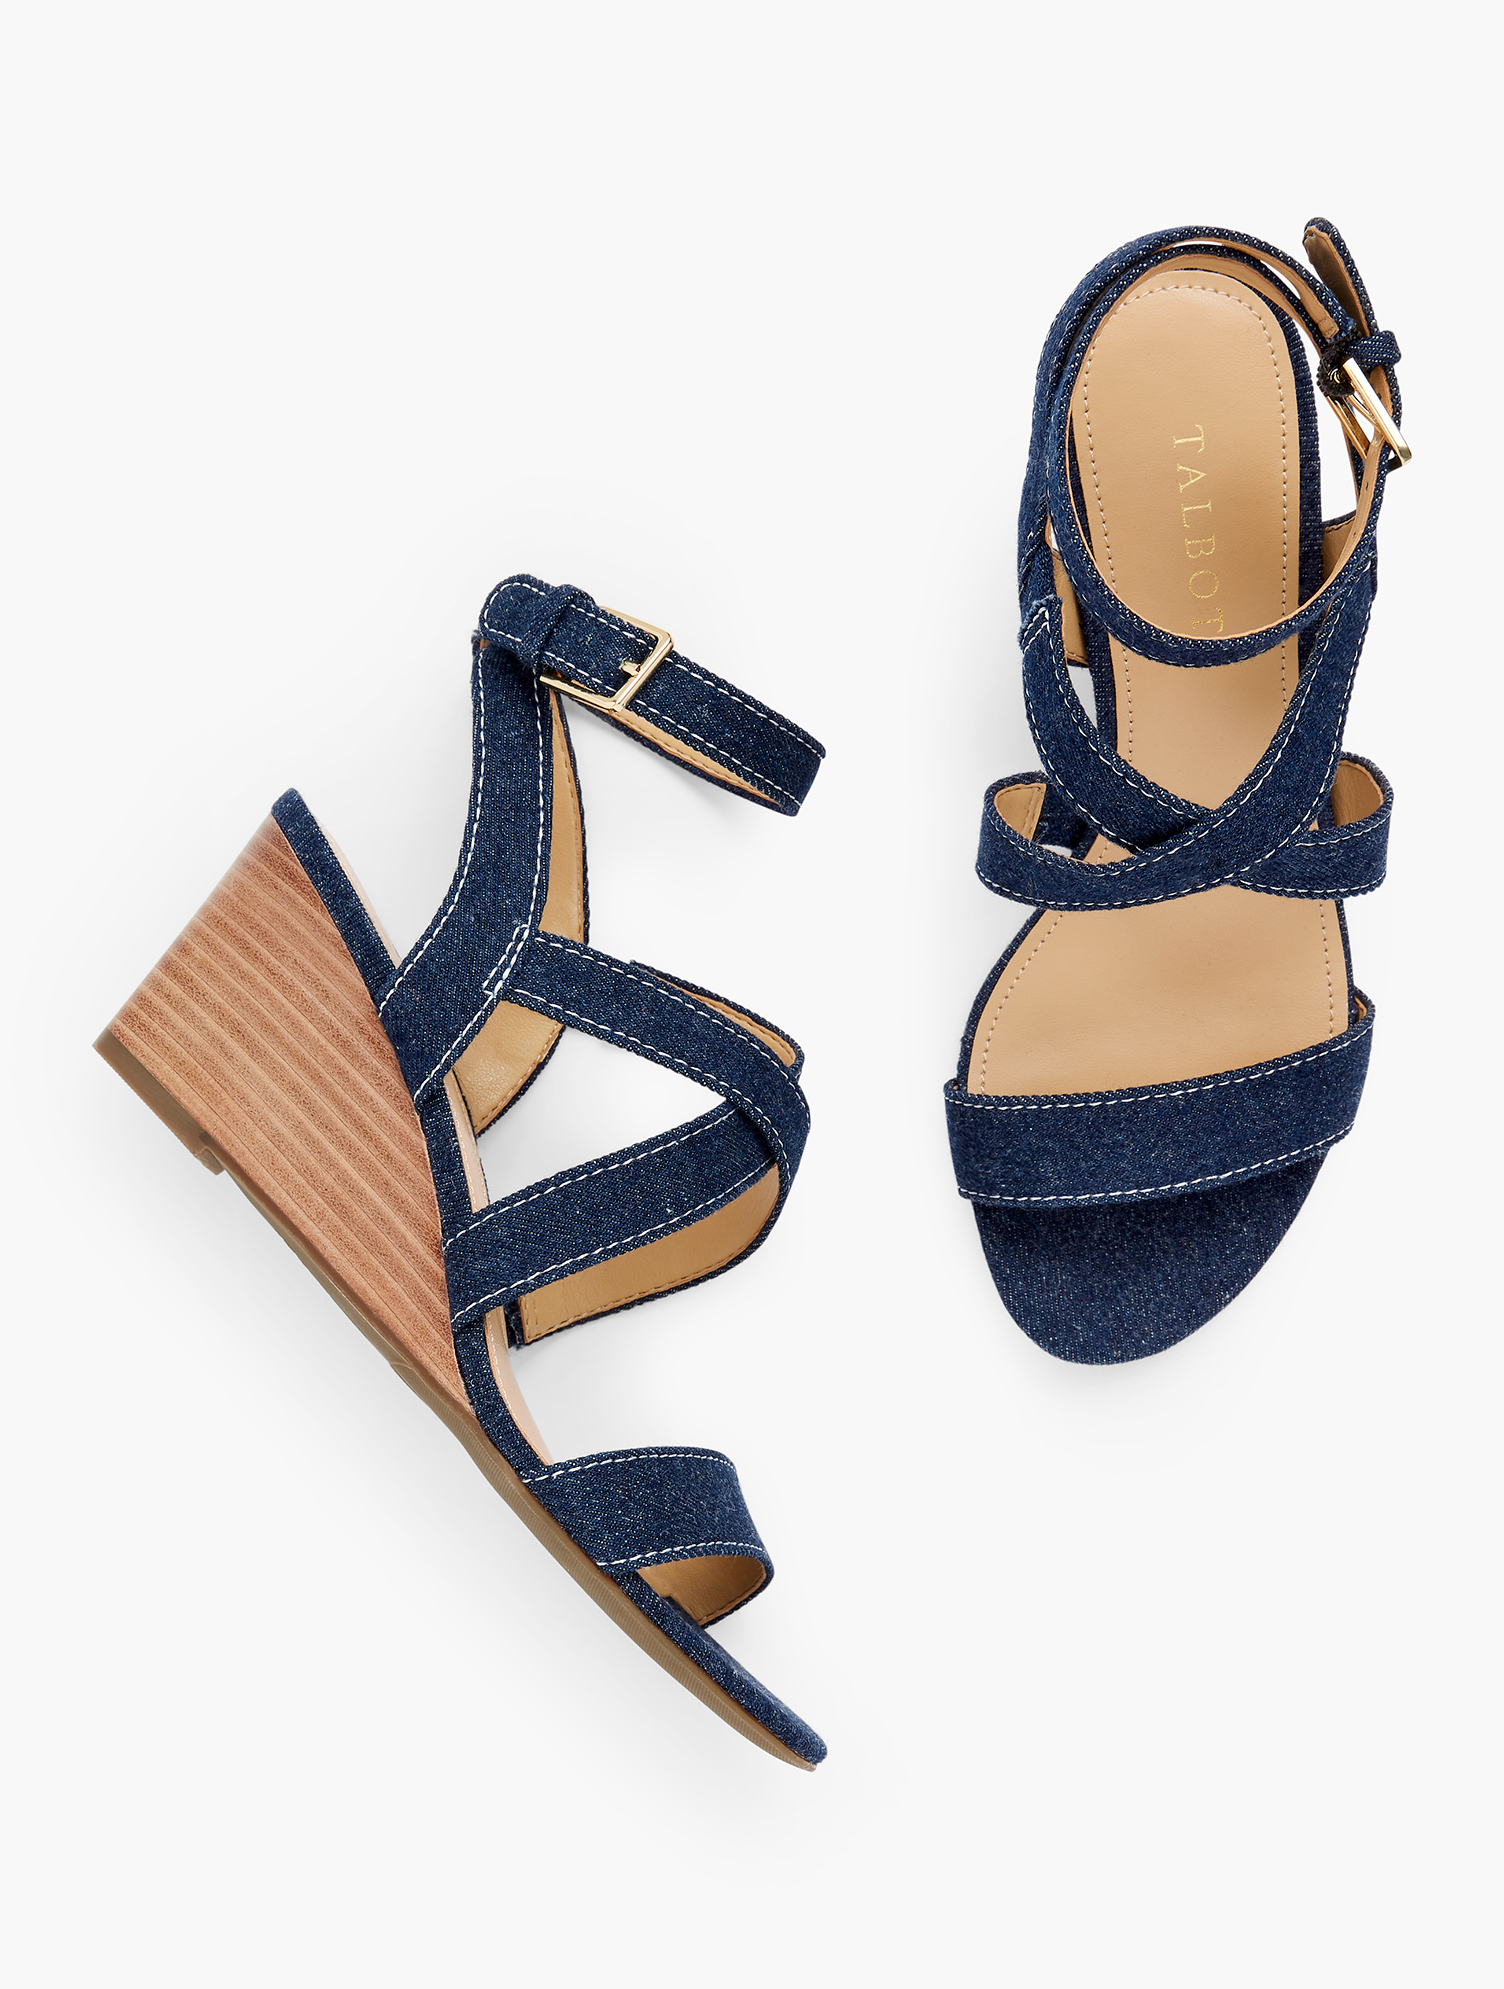 Easy to wear. Easy to pair. These strappy wedges in of-the-moment denim will become a warm weather staple in your wardrobe. Features Almond ToeNatural Stack Heel - Rubber Sole3MM Memory FoamImported Material: 100% Cotton Royce Strappy Wedges - Denim - Dark Denim - 11M - 100% Cotton Talbots